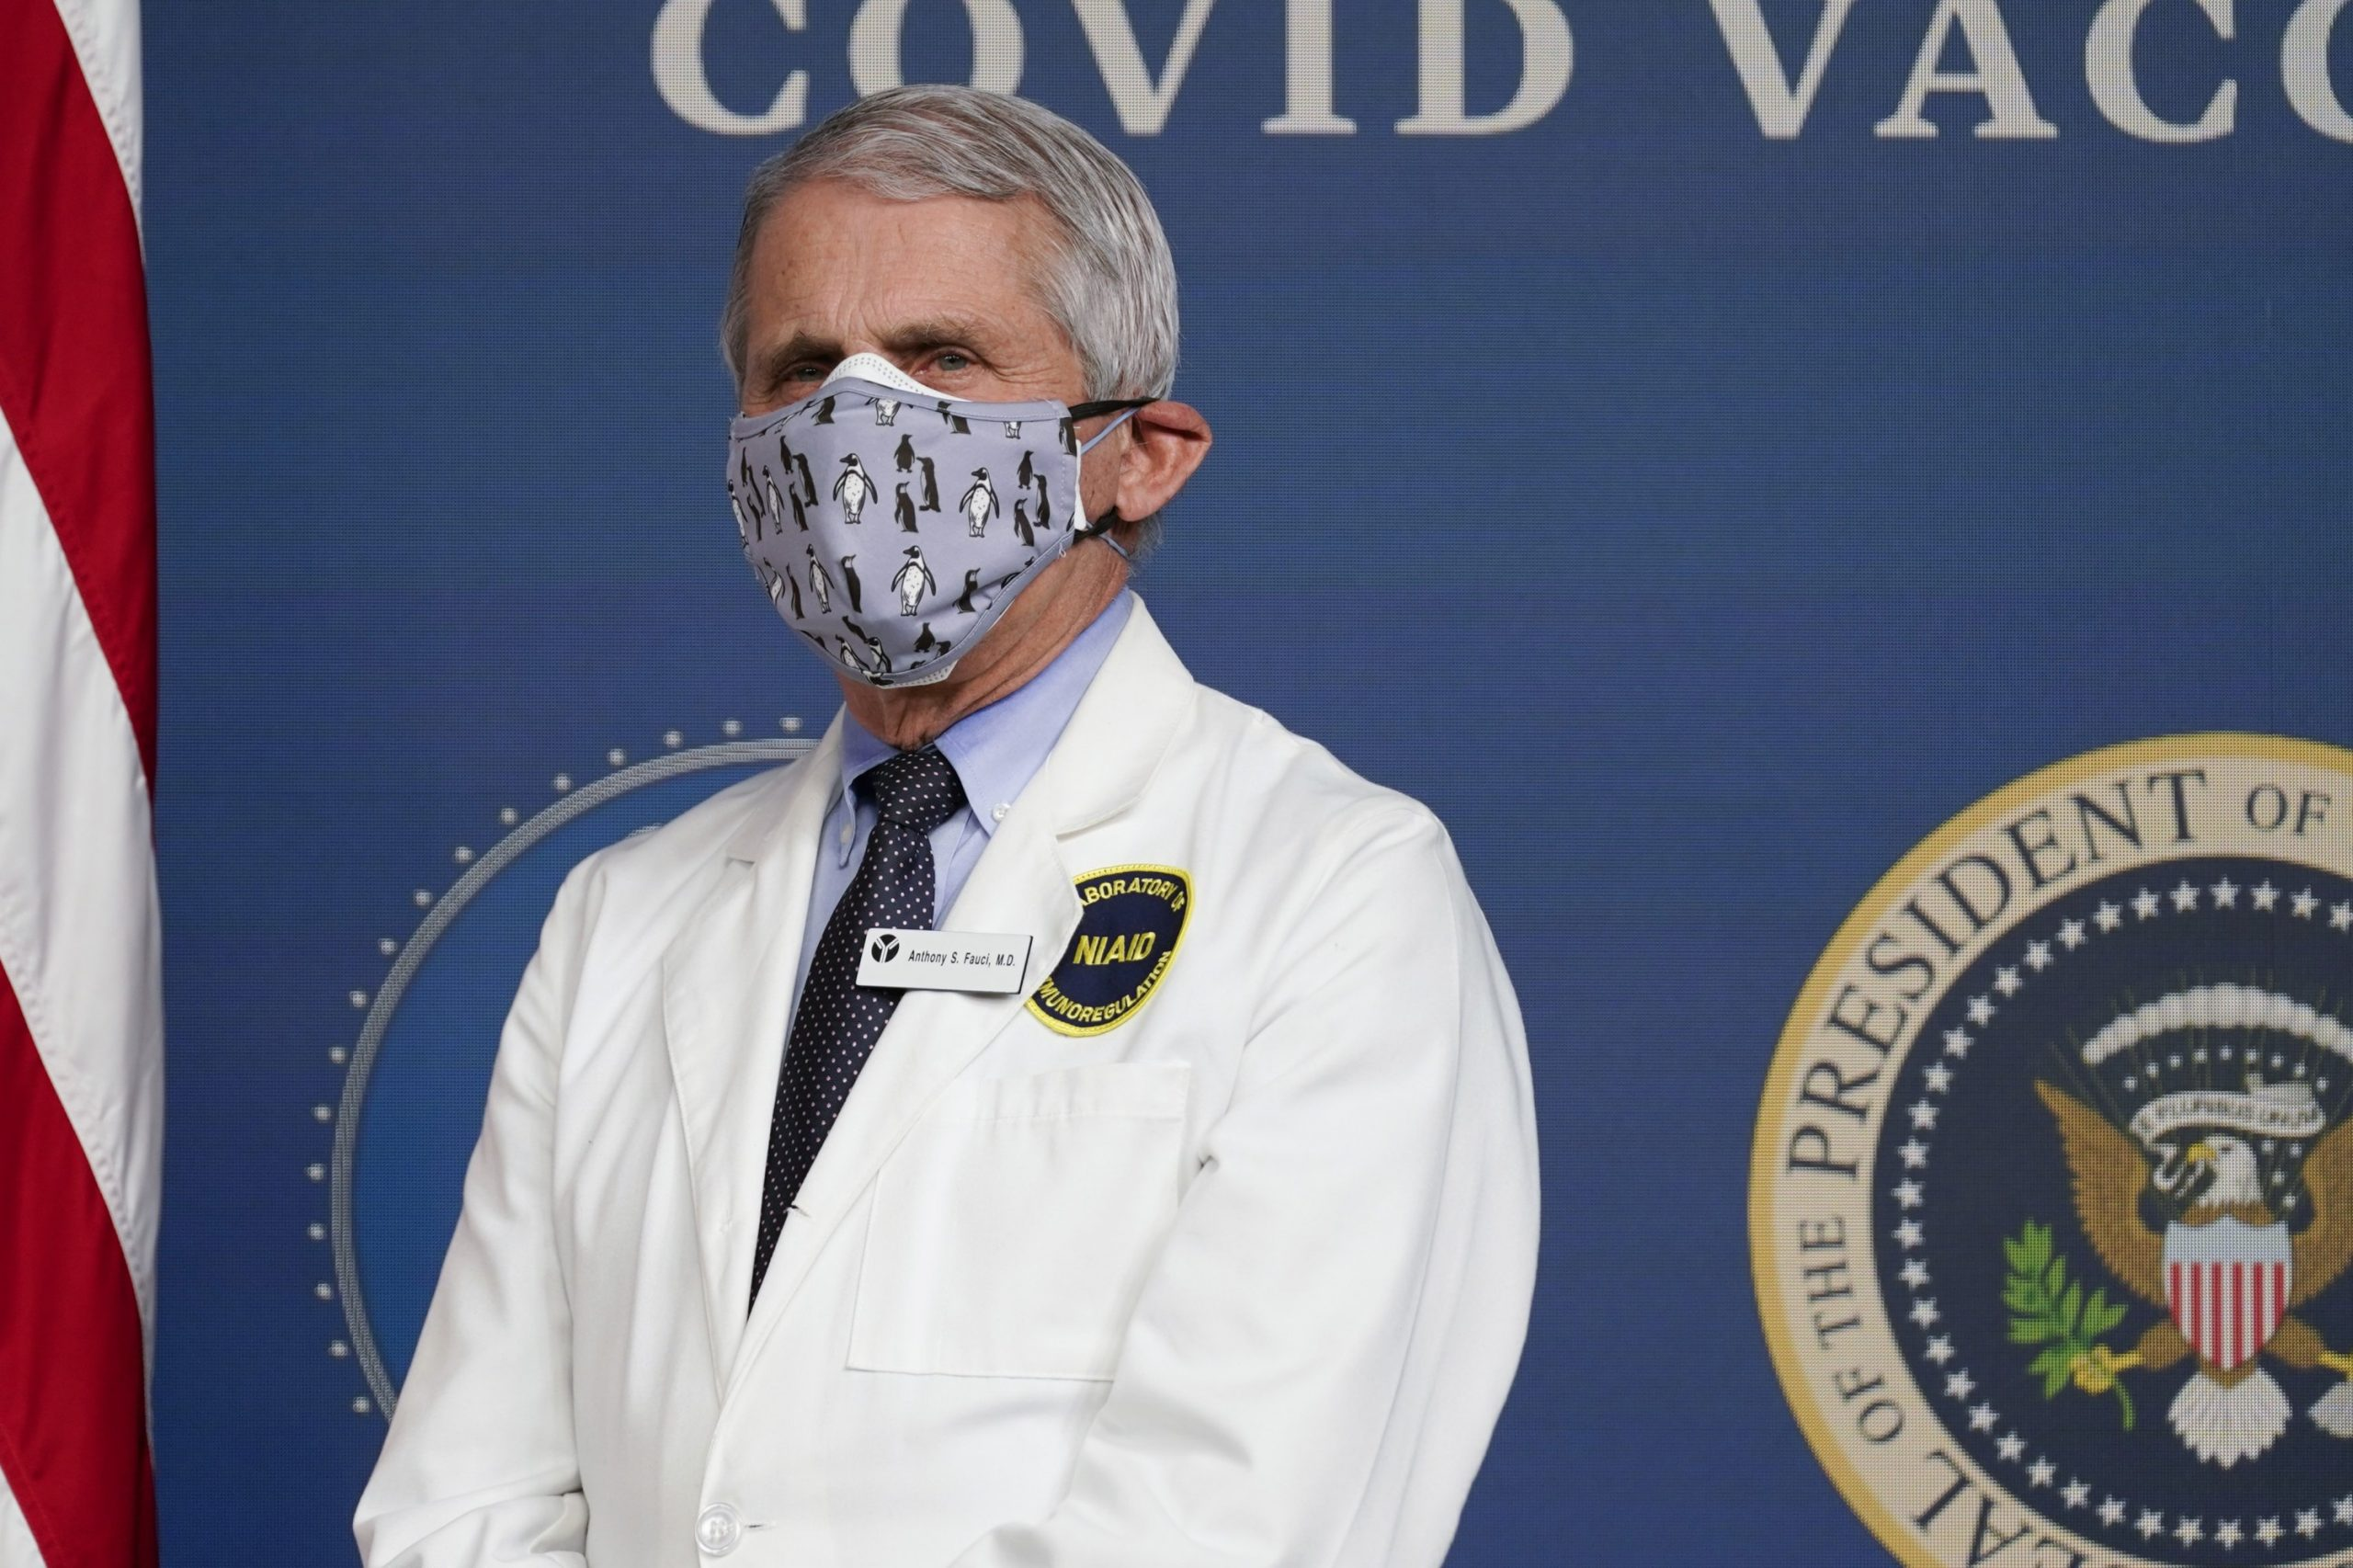 Fauci: Most serious cases and deaths among unvaccinated people